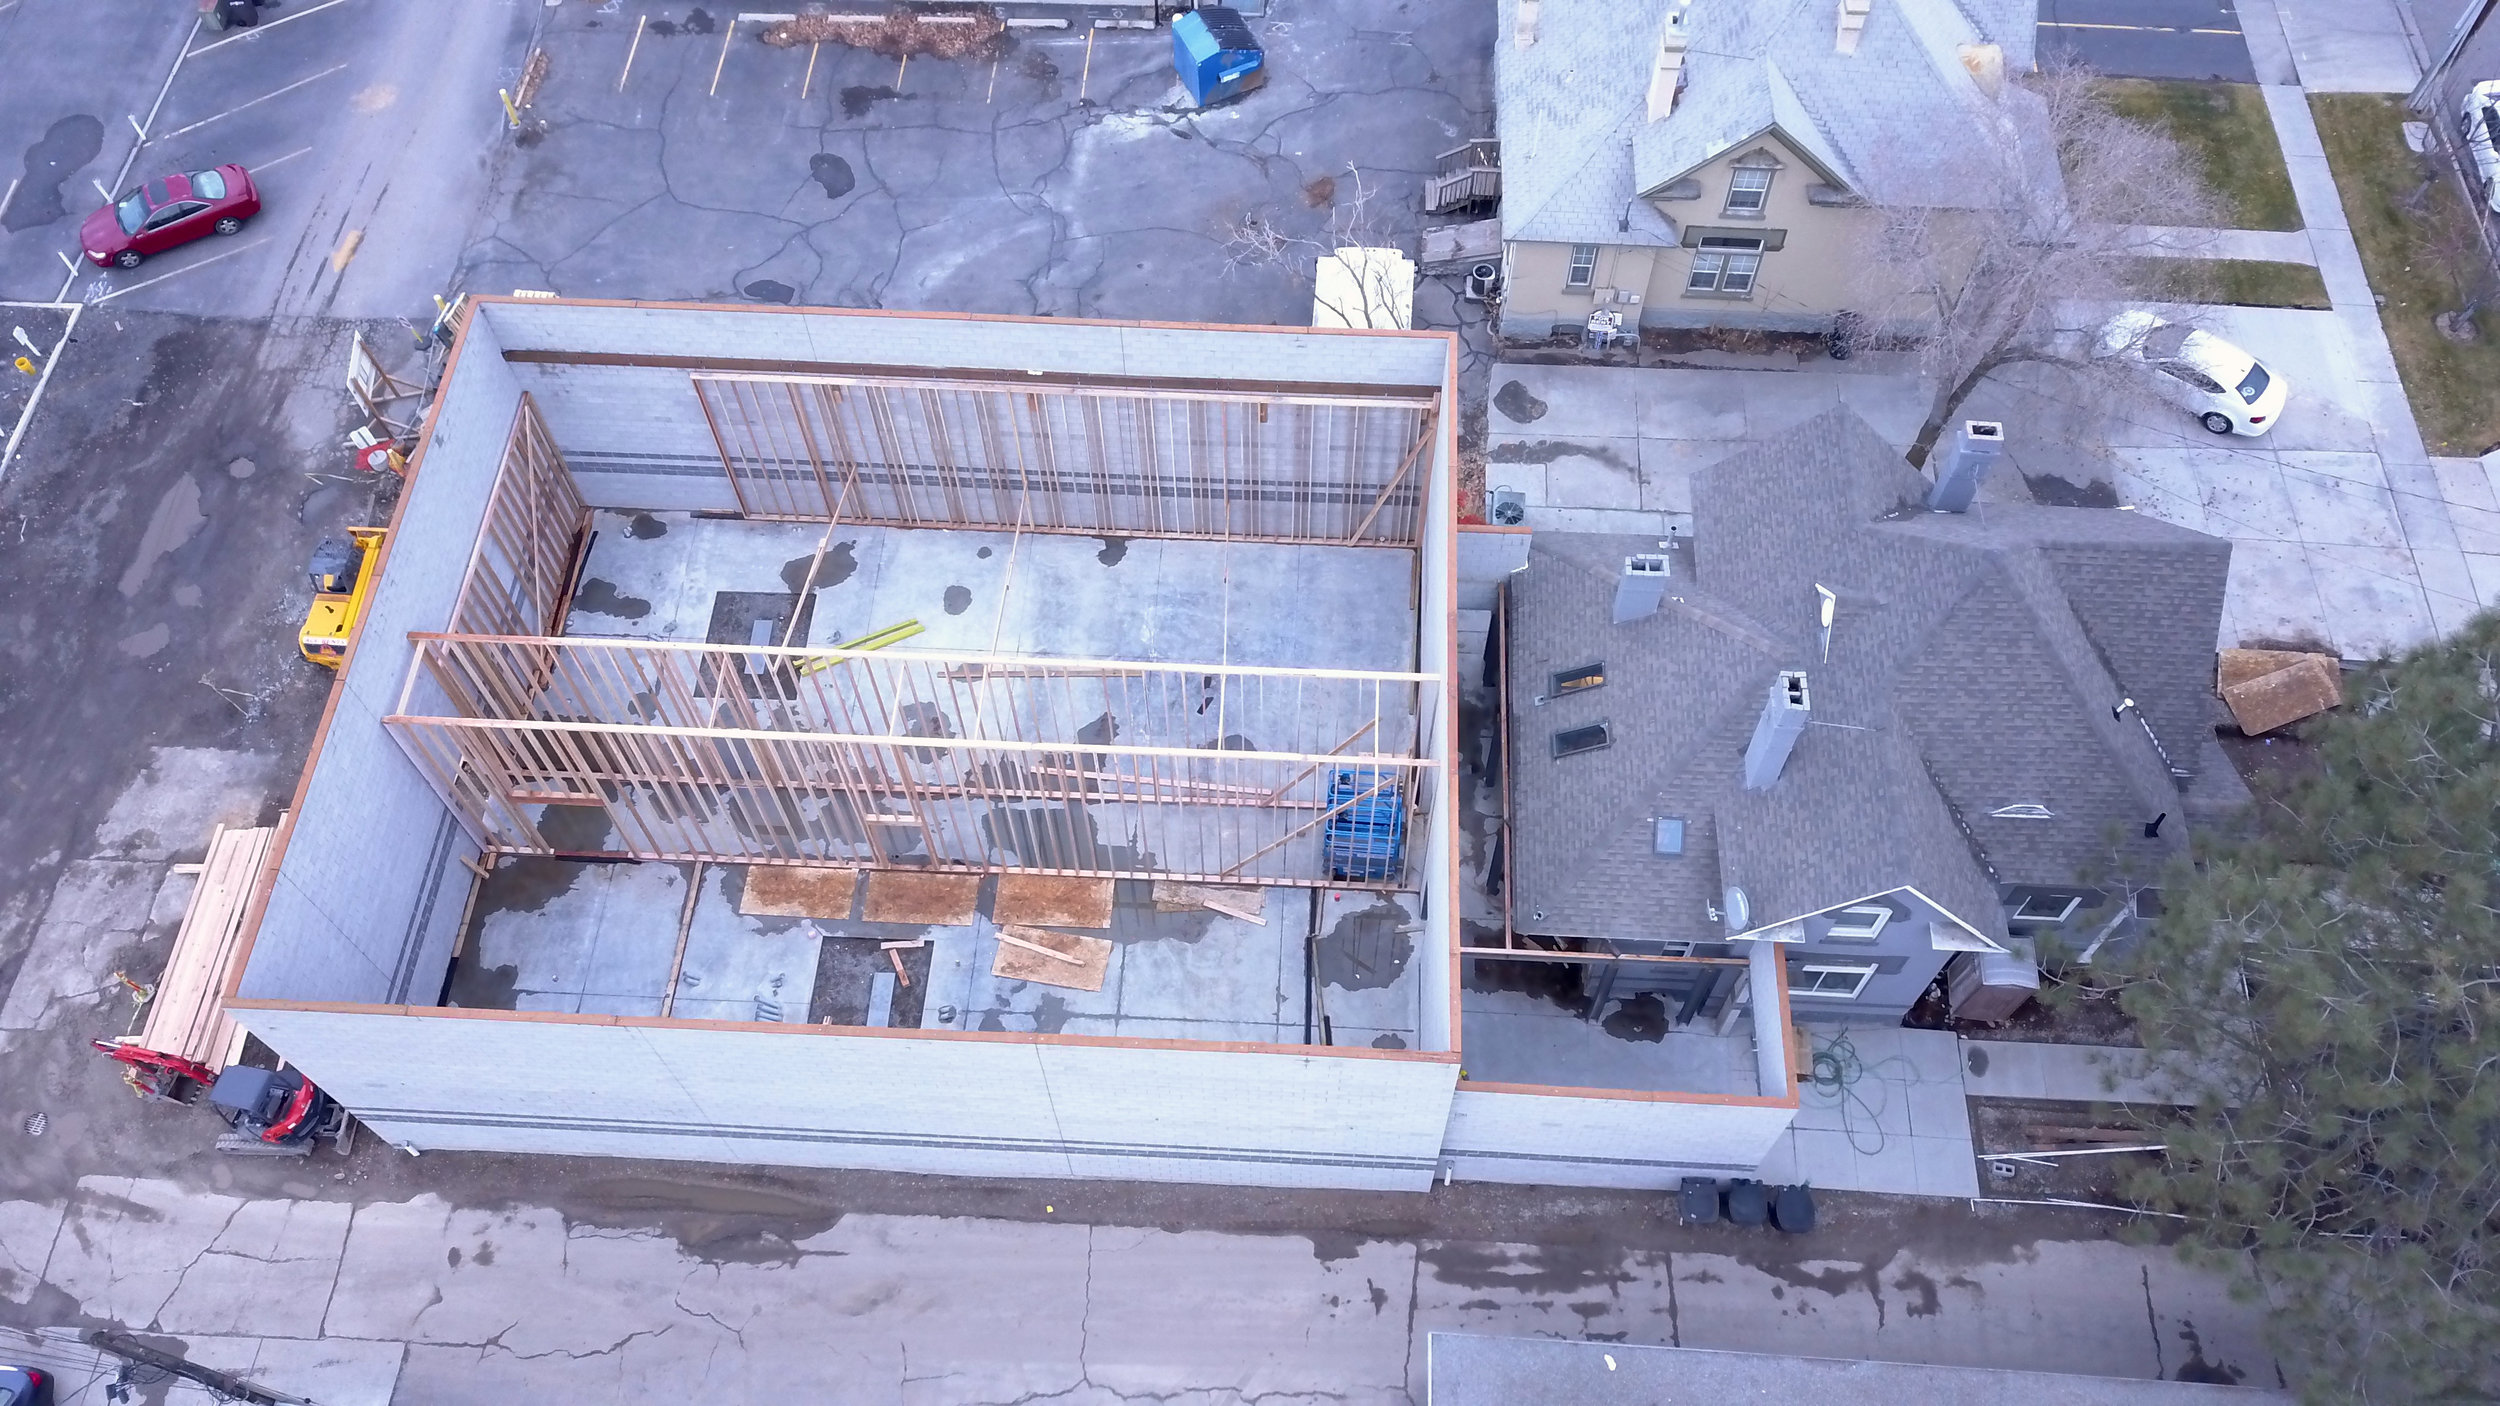 Ariel shot showing the framing that has been done so far. So much road still ahead of us, but tomorrow morning trusses show up and in a week or so we should have this place dried in.